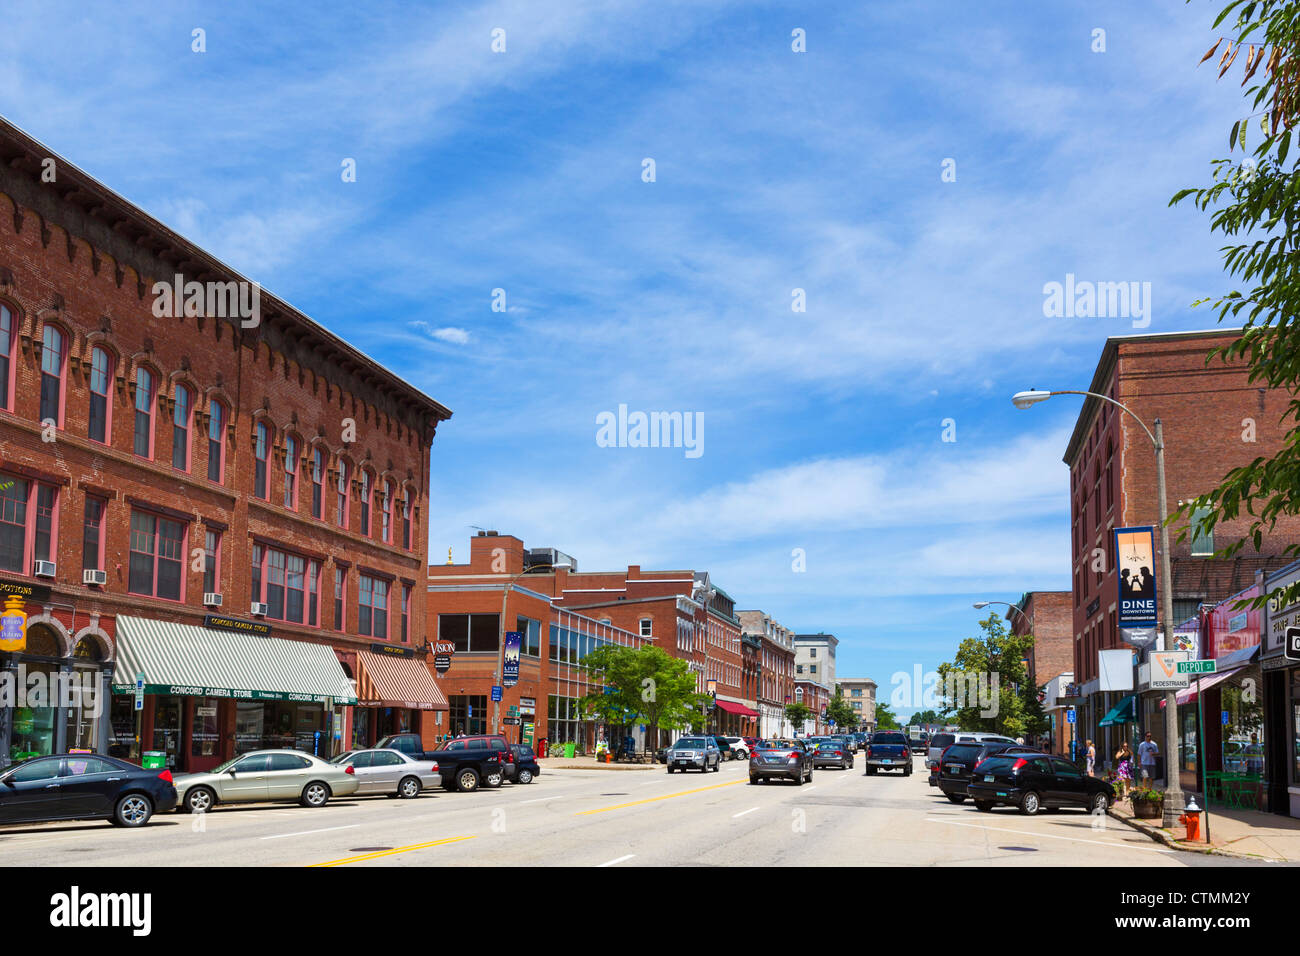 Historic buildings on Main Street in downtown Concord, New Hampshire, USA - Stock Image